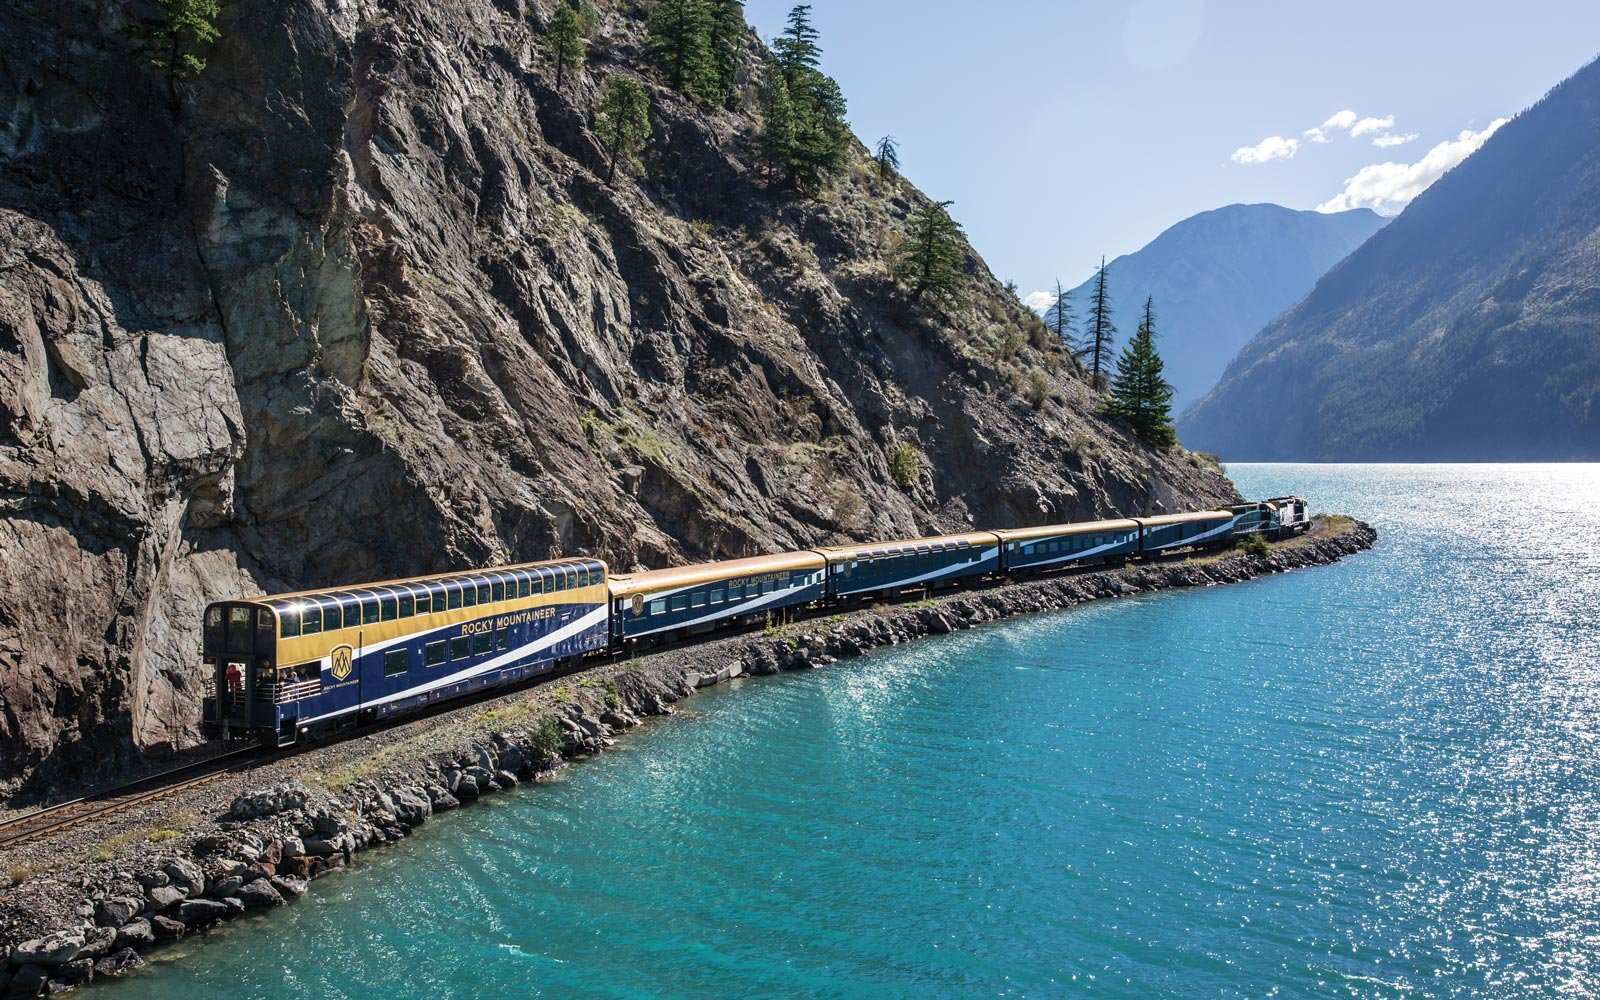 This Glass-domed Train Through the Canadian Rockies Is One of the Most Scenic Rides in the World (Video)